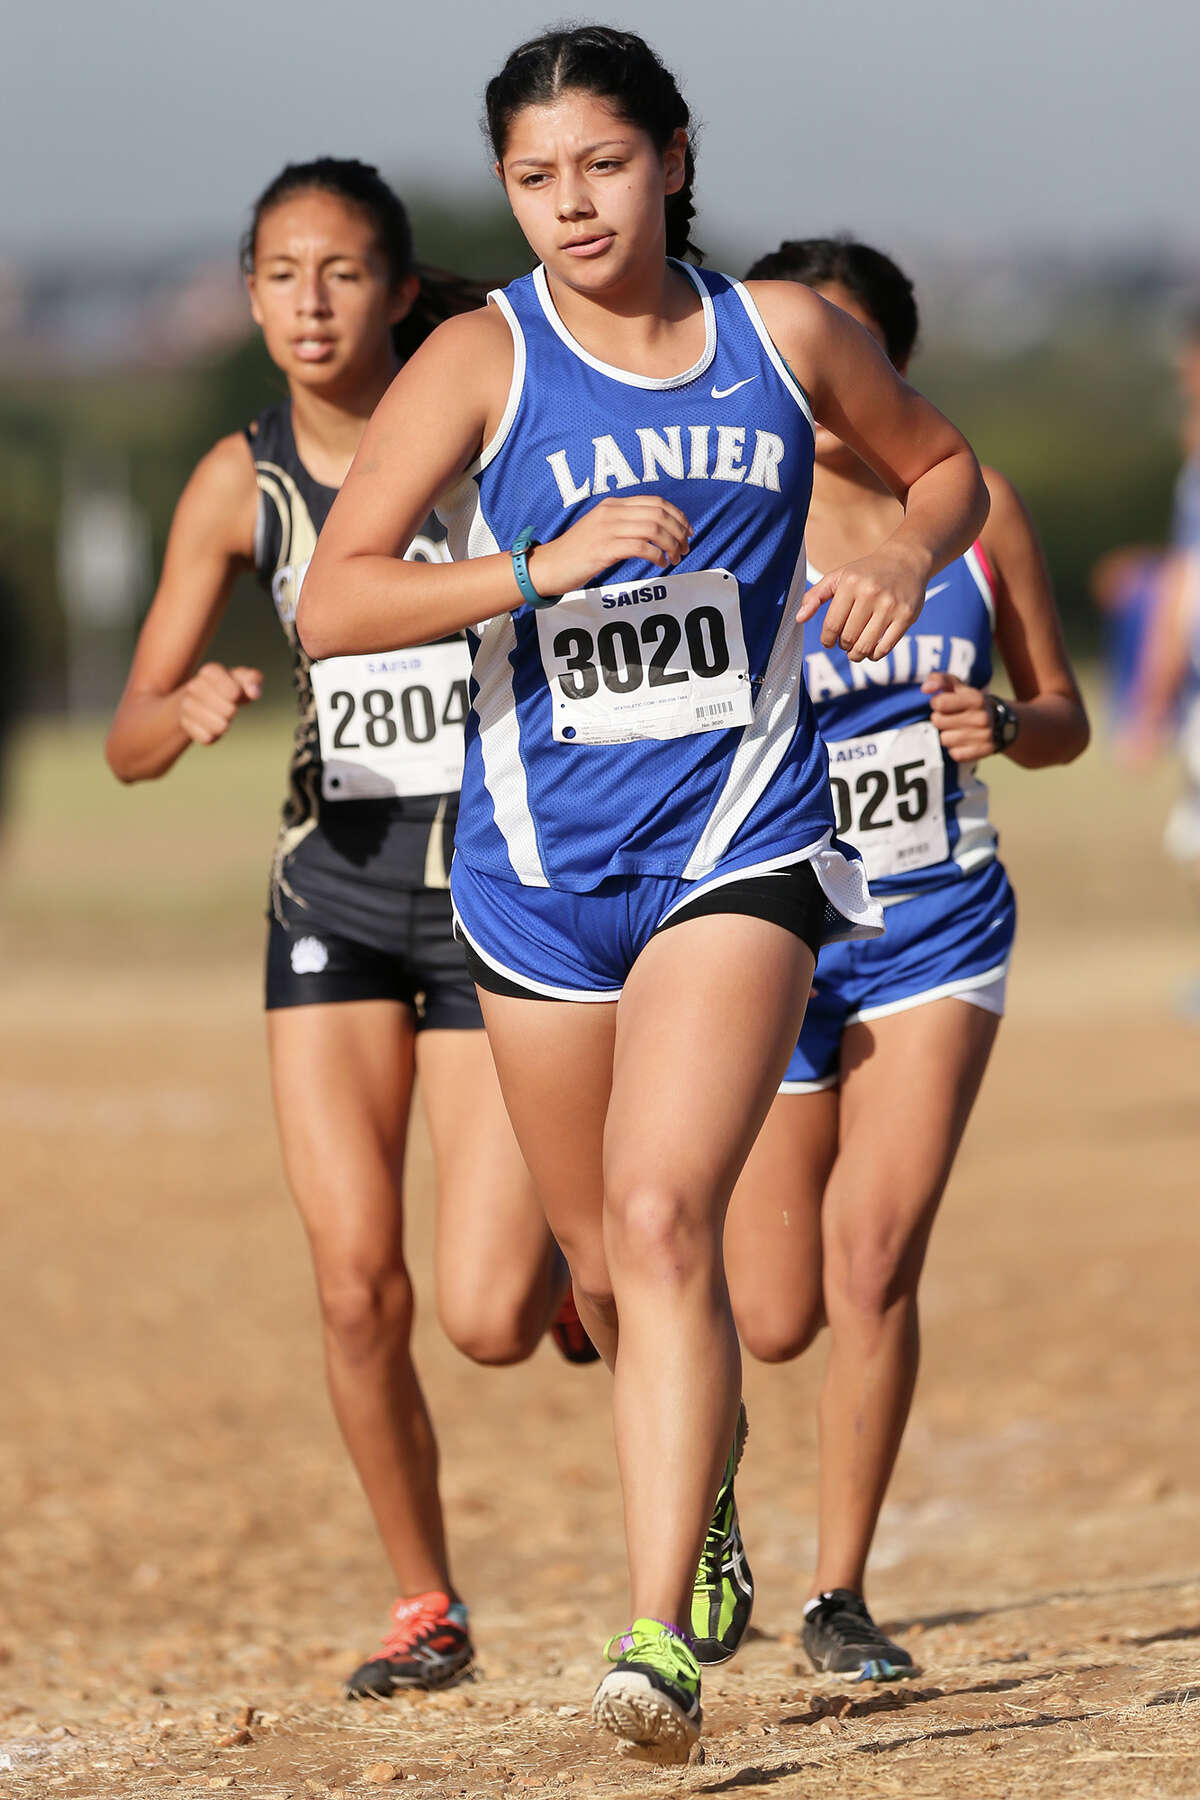 Lanier's JoAnna Benavidez leads teammate Jovana Espinoza (right) and Edison's Litzy Flores in the varsity girls 3 mile run during the District 28-5A cross country meet at San Antonio State Hospital on Friday, Oct. 16, 2015. Benavidez won the event with a time of 18:59.91. Flores finished second and Espinoza fourth. MARVIN PFEIFFER/ mpfeiffer@express-news.net